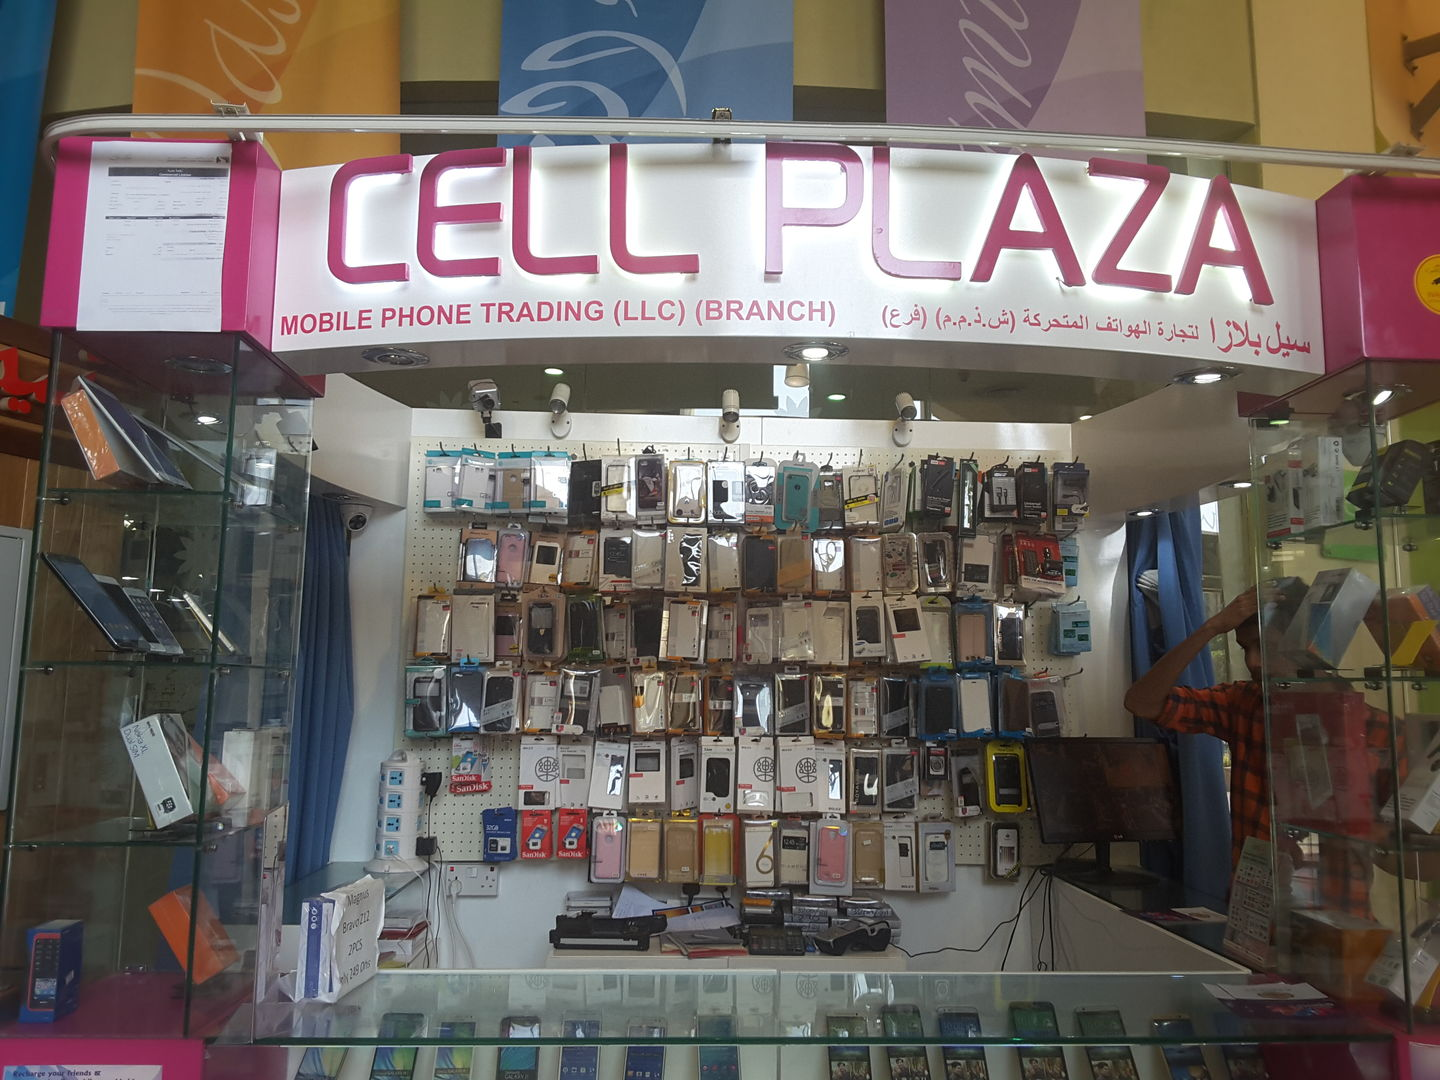 HiDubai-business-cell-plaza-mobile-phone-trading-shopping-consumer-electronics-green-community-dubai-investment-park-1-dubai-2